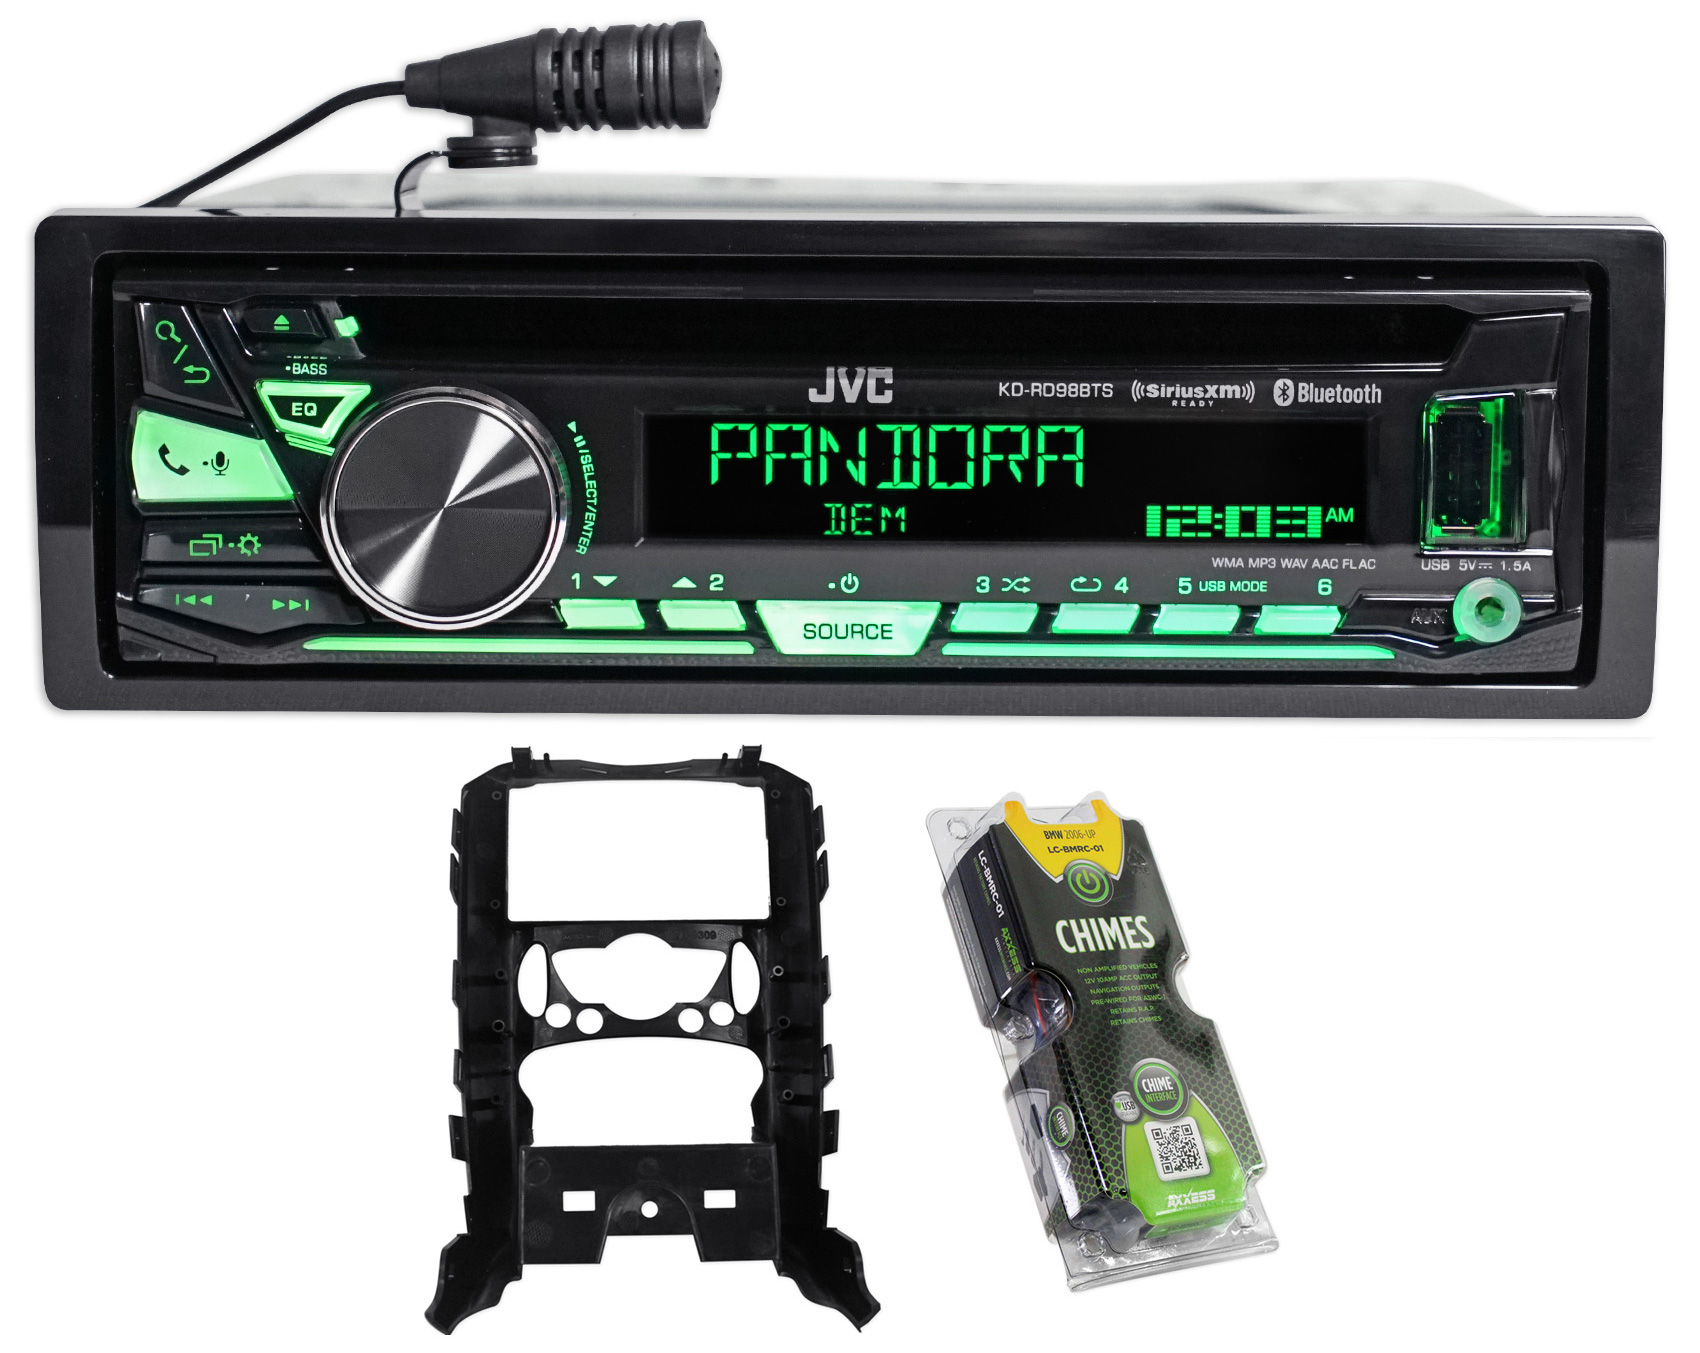 2007-2010 Mini Cooper JVC Stereo CD Player Receiver w  Bluetooth+USB+Sirius XM by JVC